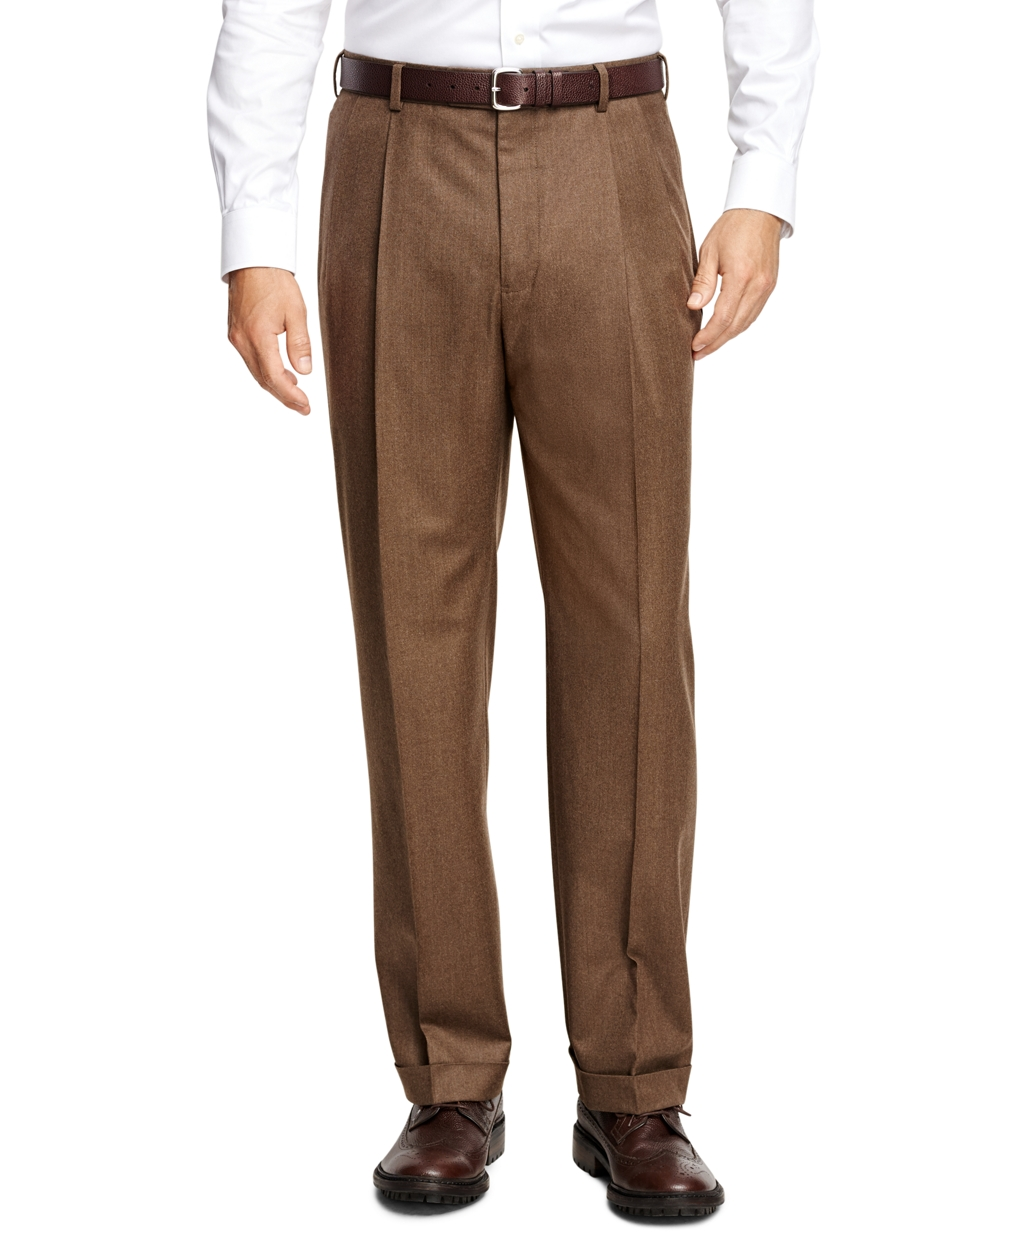 Pleated Suit Pants Or Not